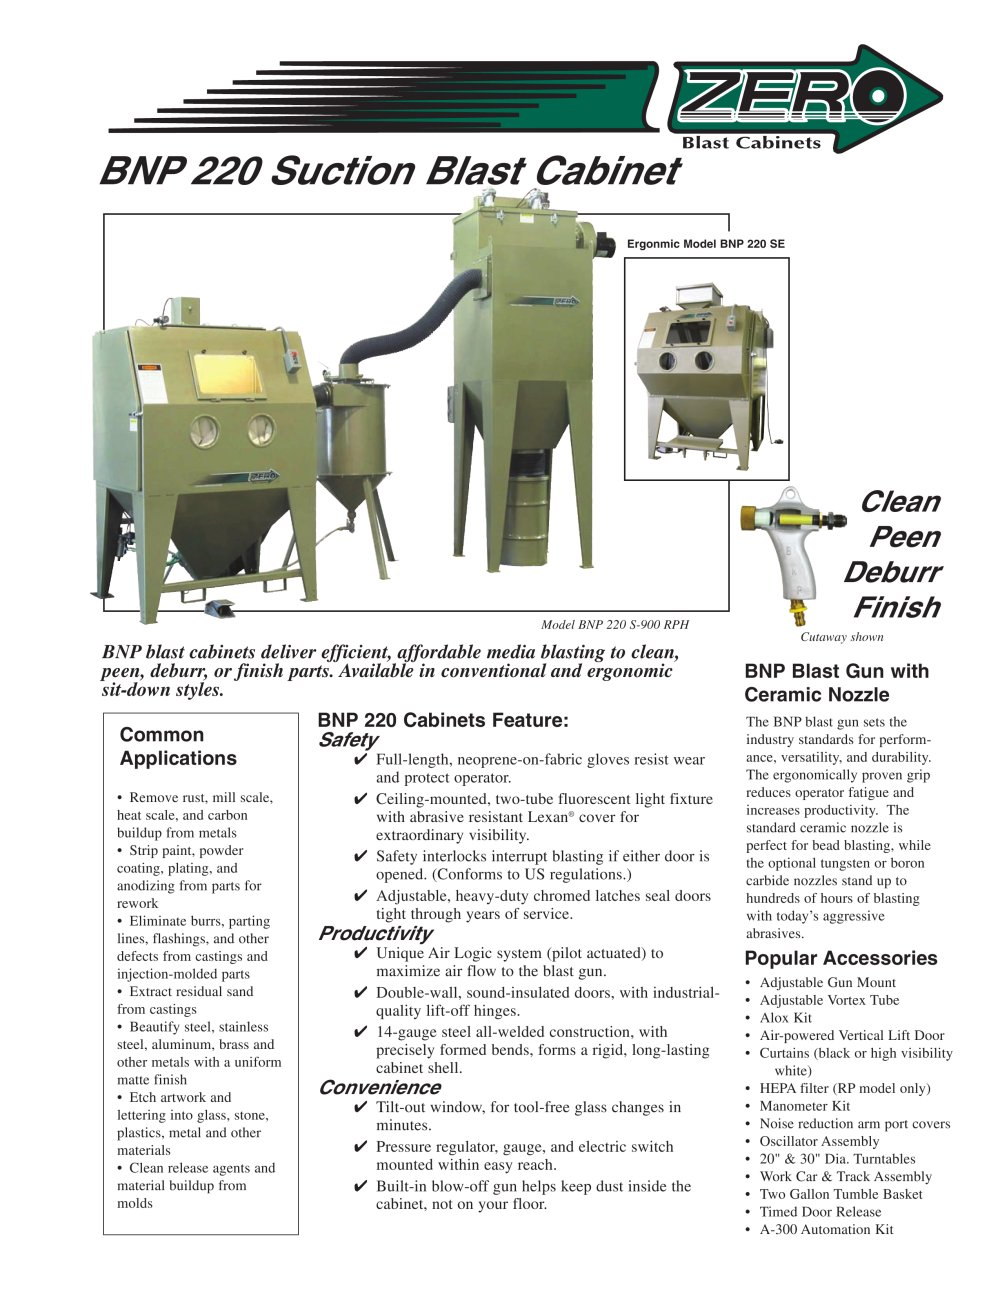 Clemco Industries Blast Cabinets Bnp 220 Suction Blast Cabinet Rev F Clemco Industries Pdf